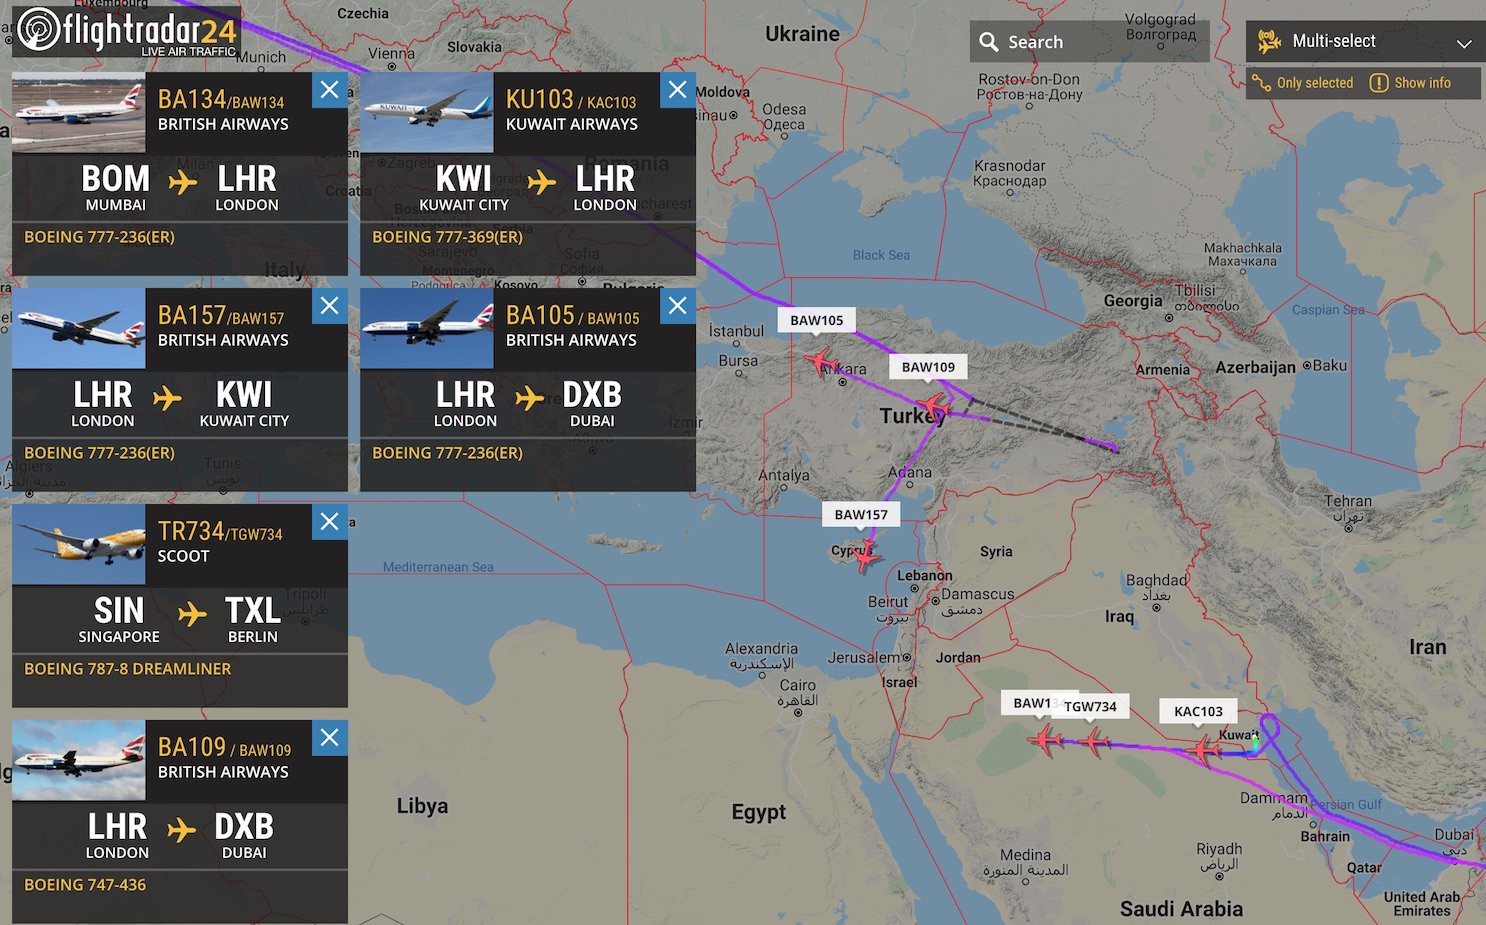 Rerouted flights and some diversions and airlines minimize risk regarding Iraq and Iran overflights